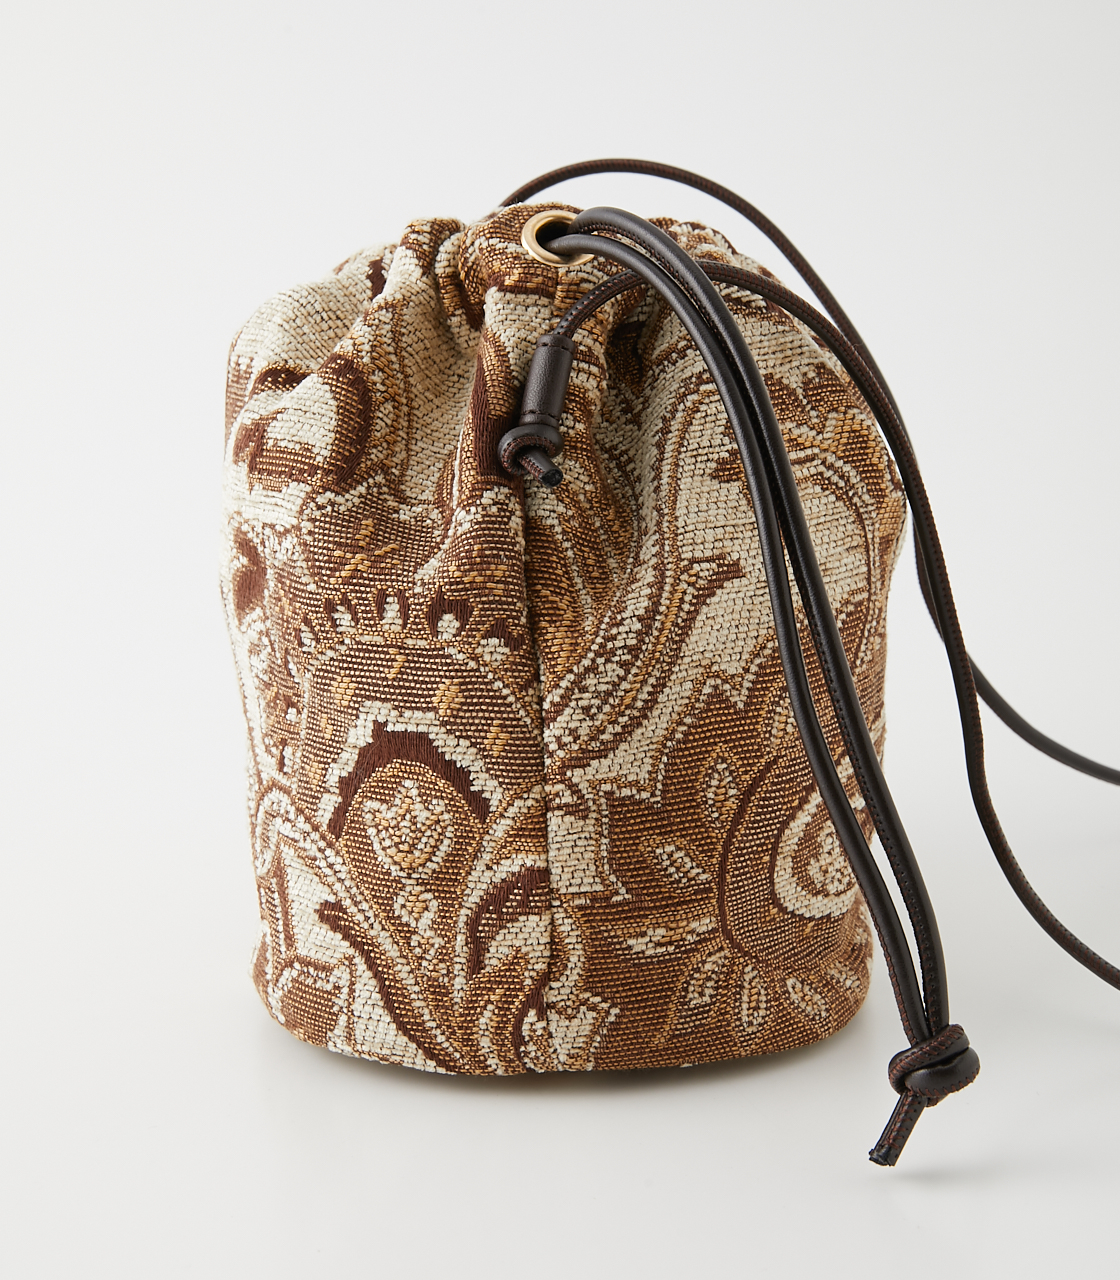 PAISLEY JACQUARD GATHER BAG/ペイズリージャガードギャザーバッグ 詳細画像 柄BEG 3